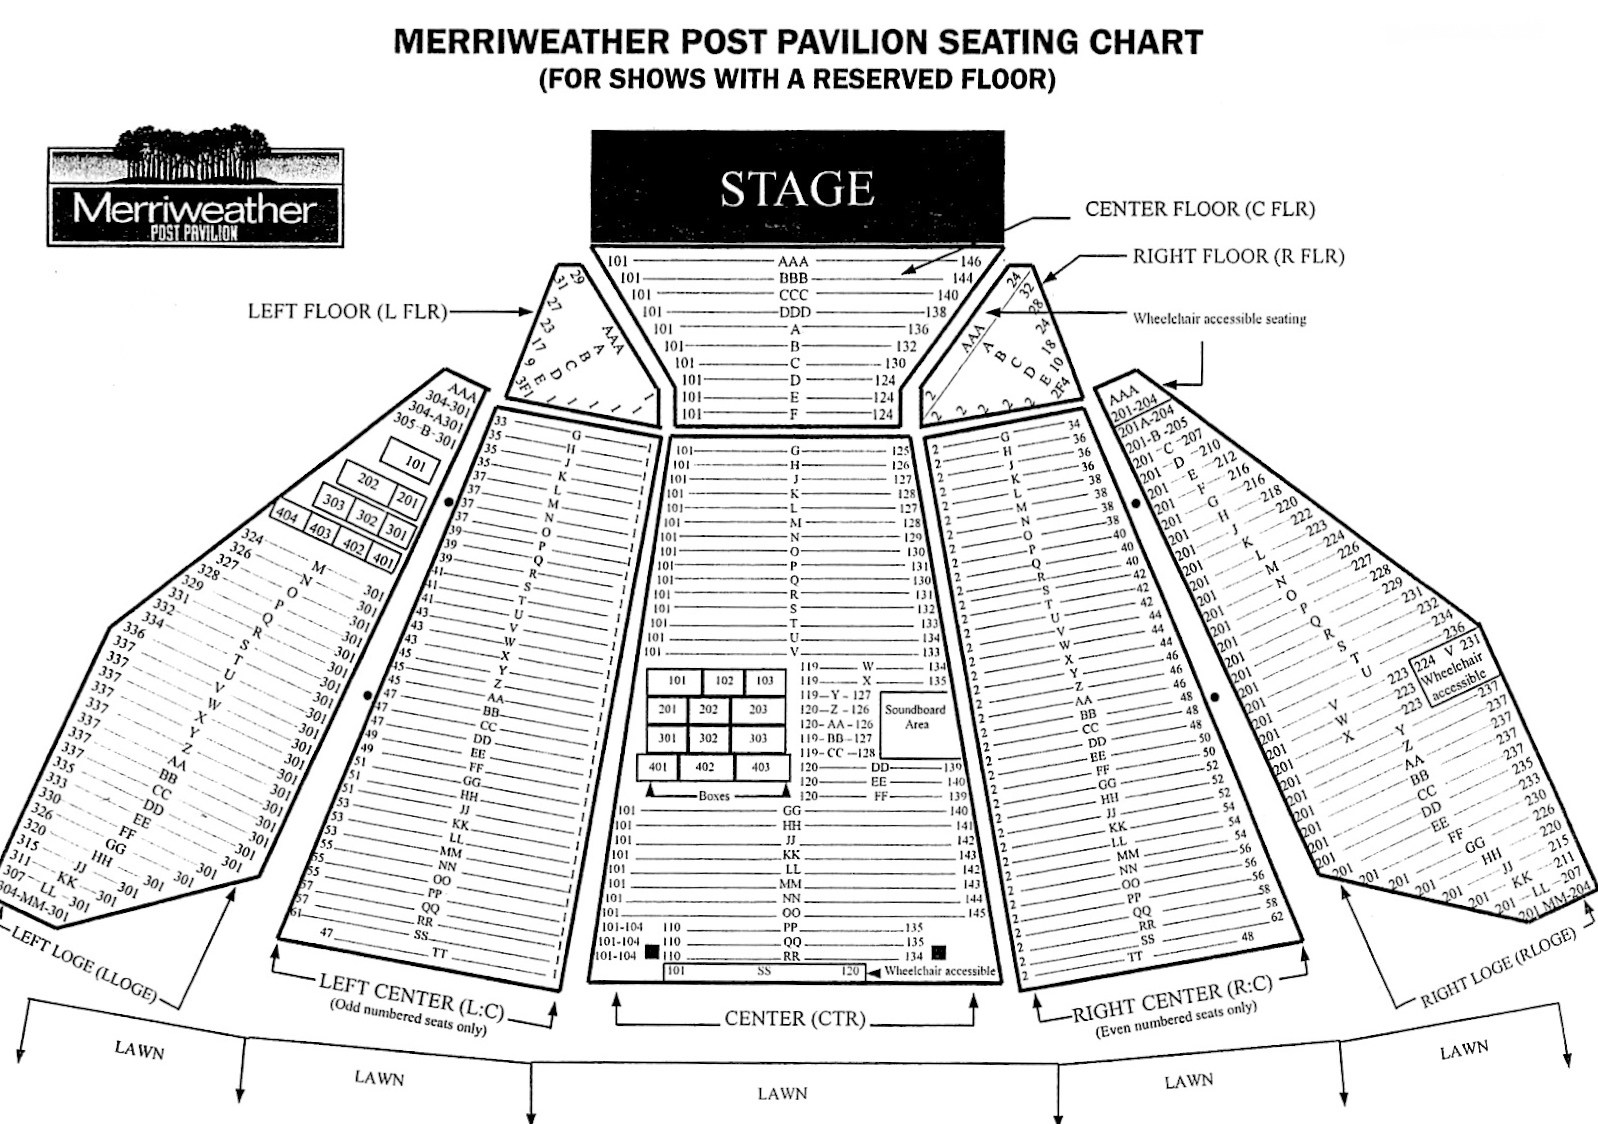 merriweather post pavilion seating - Images for merriweather post pavilion seating